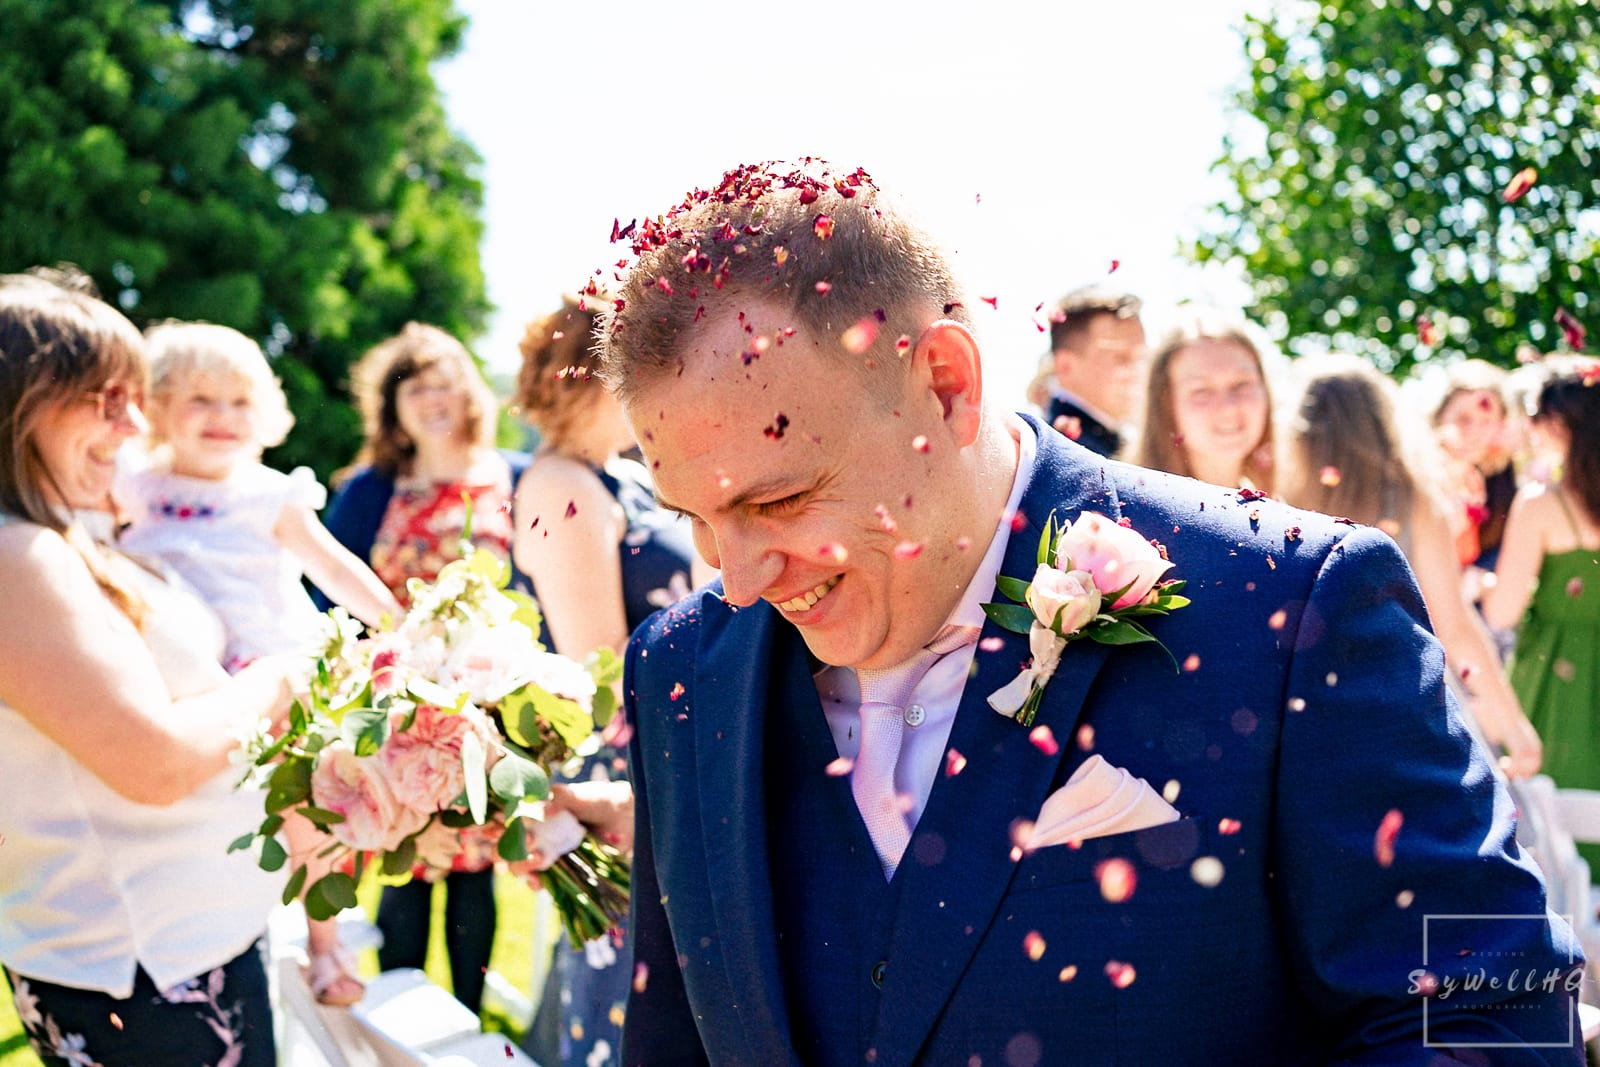 Prestwold Hall Wedding Photography - Bride and groom get covered in confetti after their outdoor wedding ceremony in the gardens at Prestwold Hall